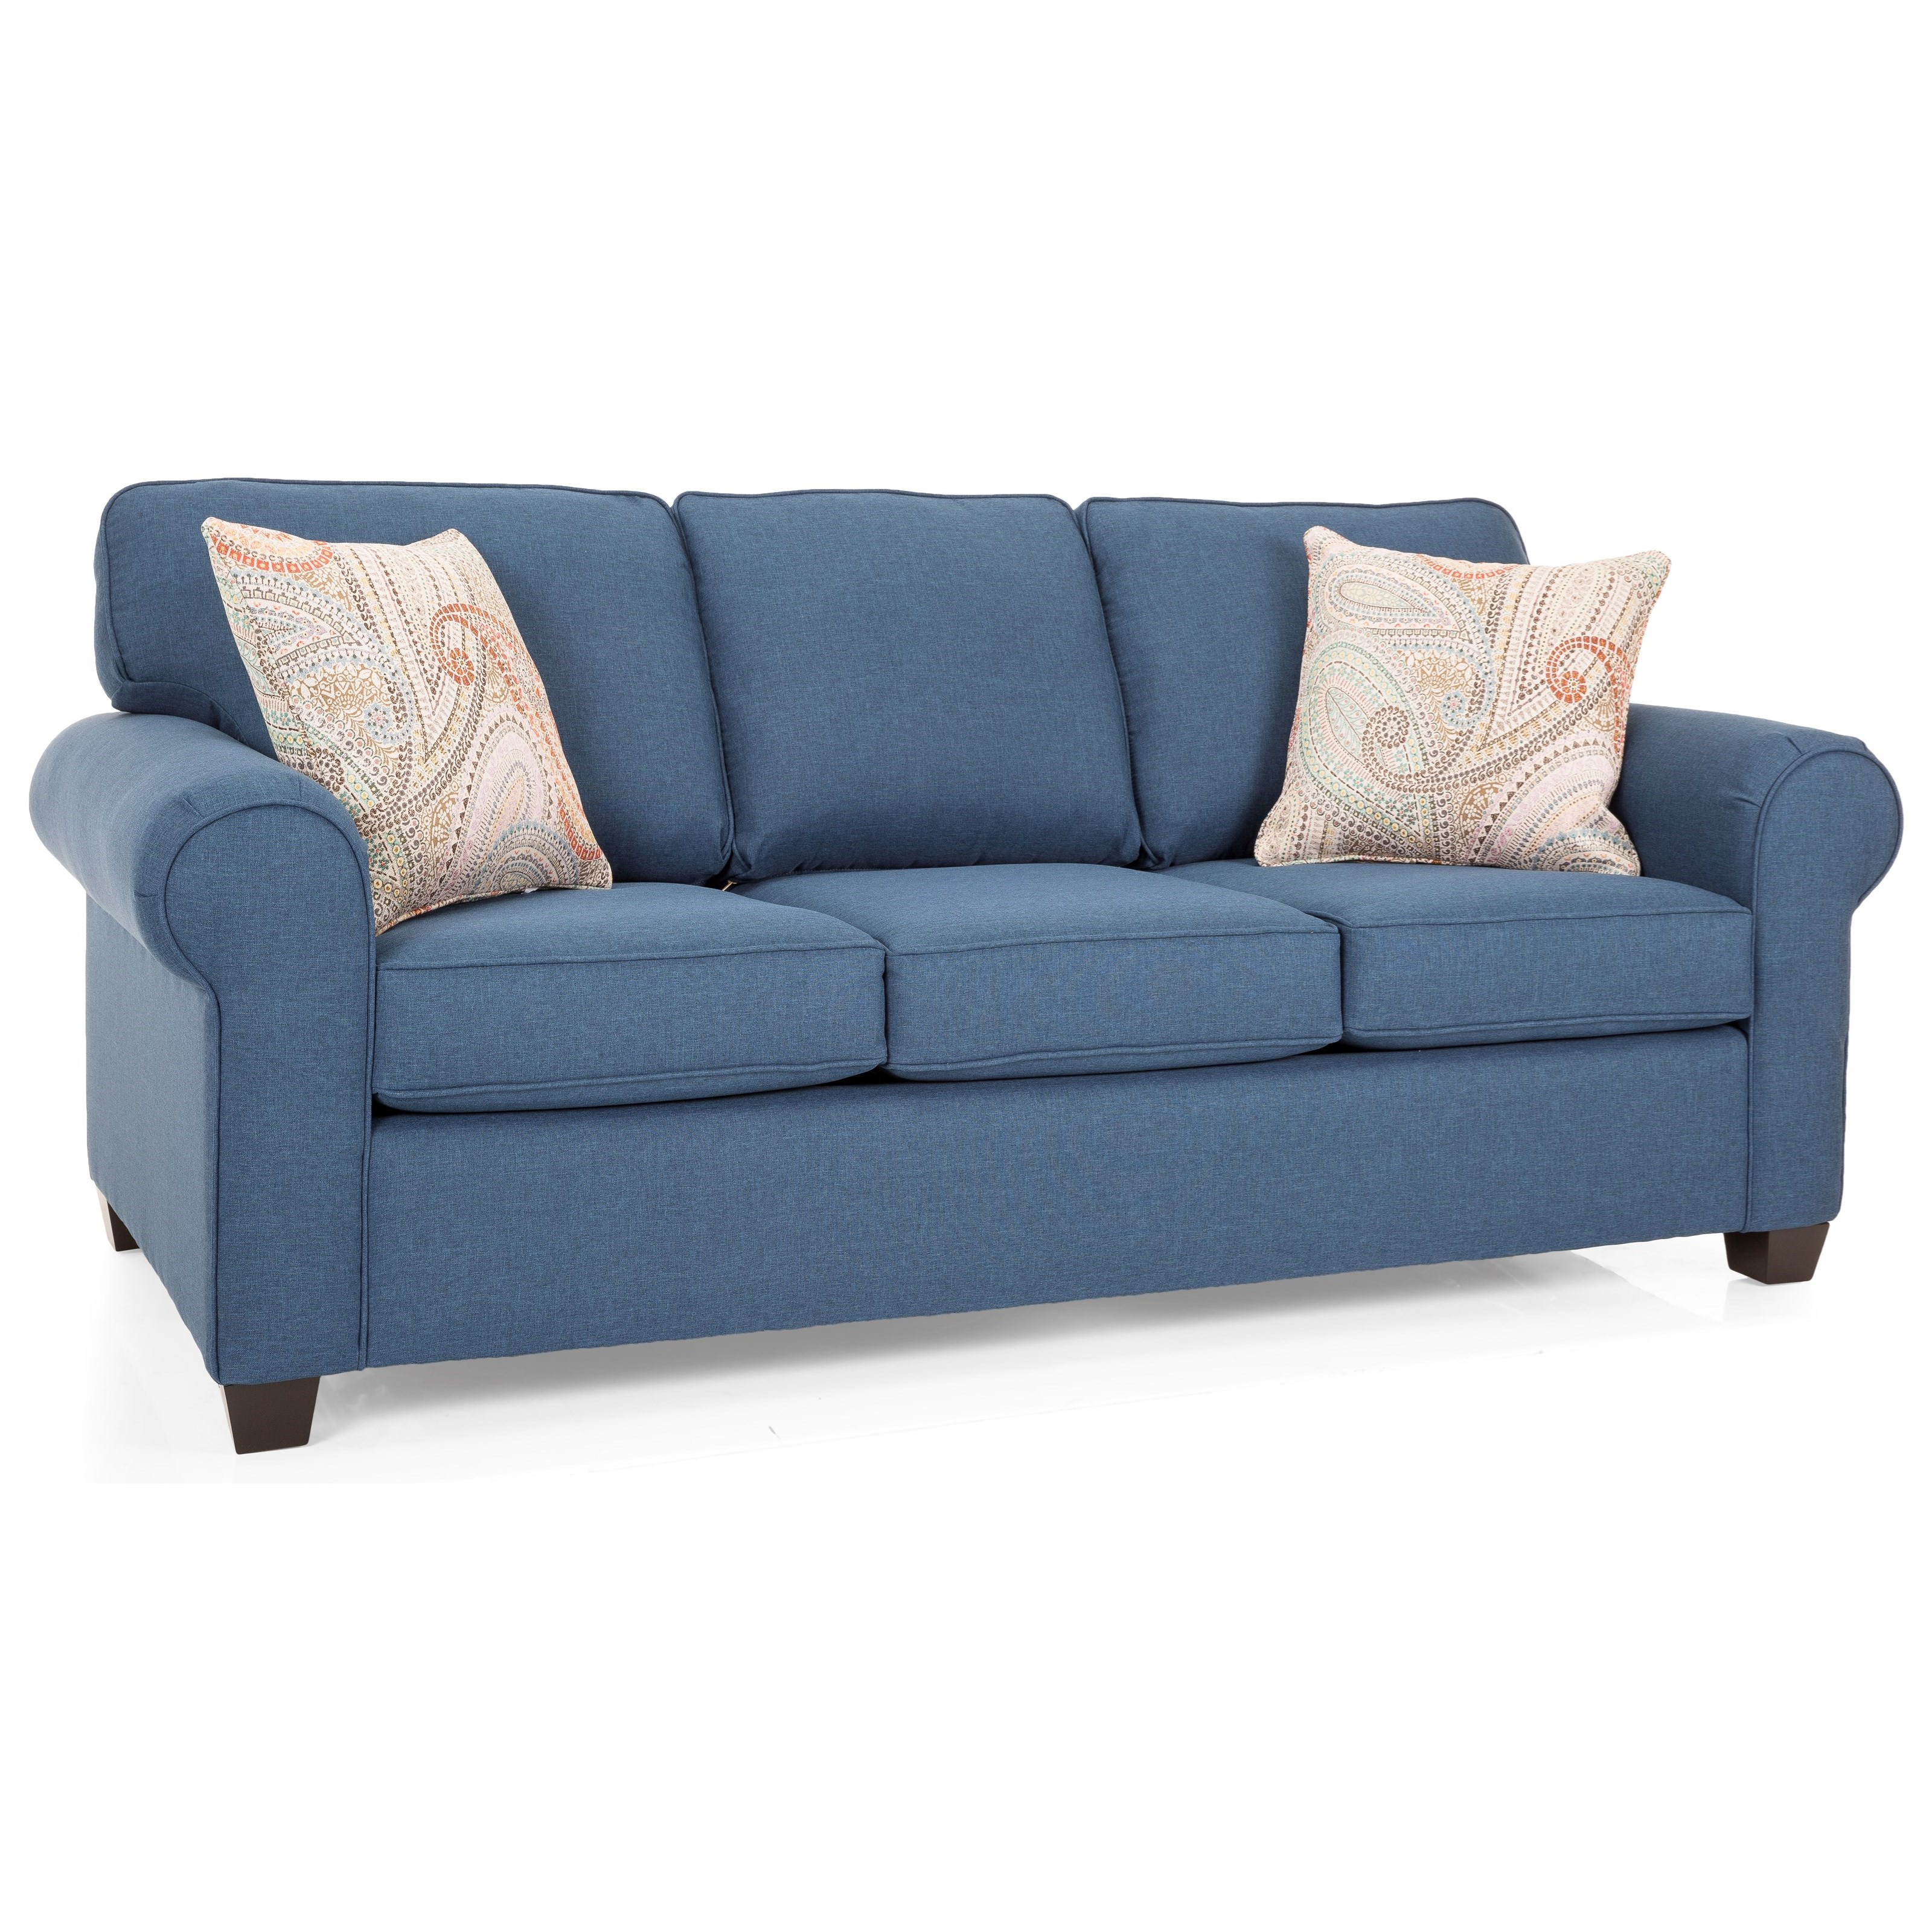 2179 Queen Bed Sofa by Decor-Rest at Rooms for Less